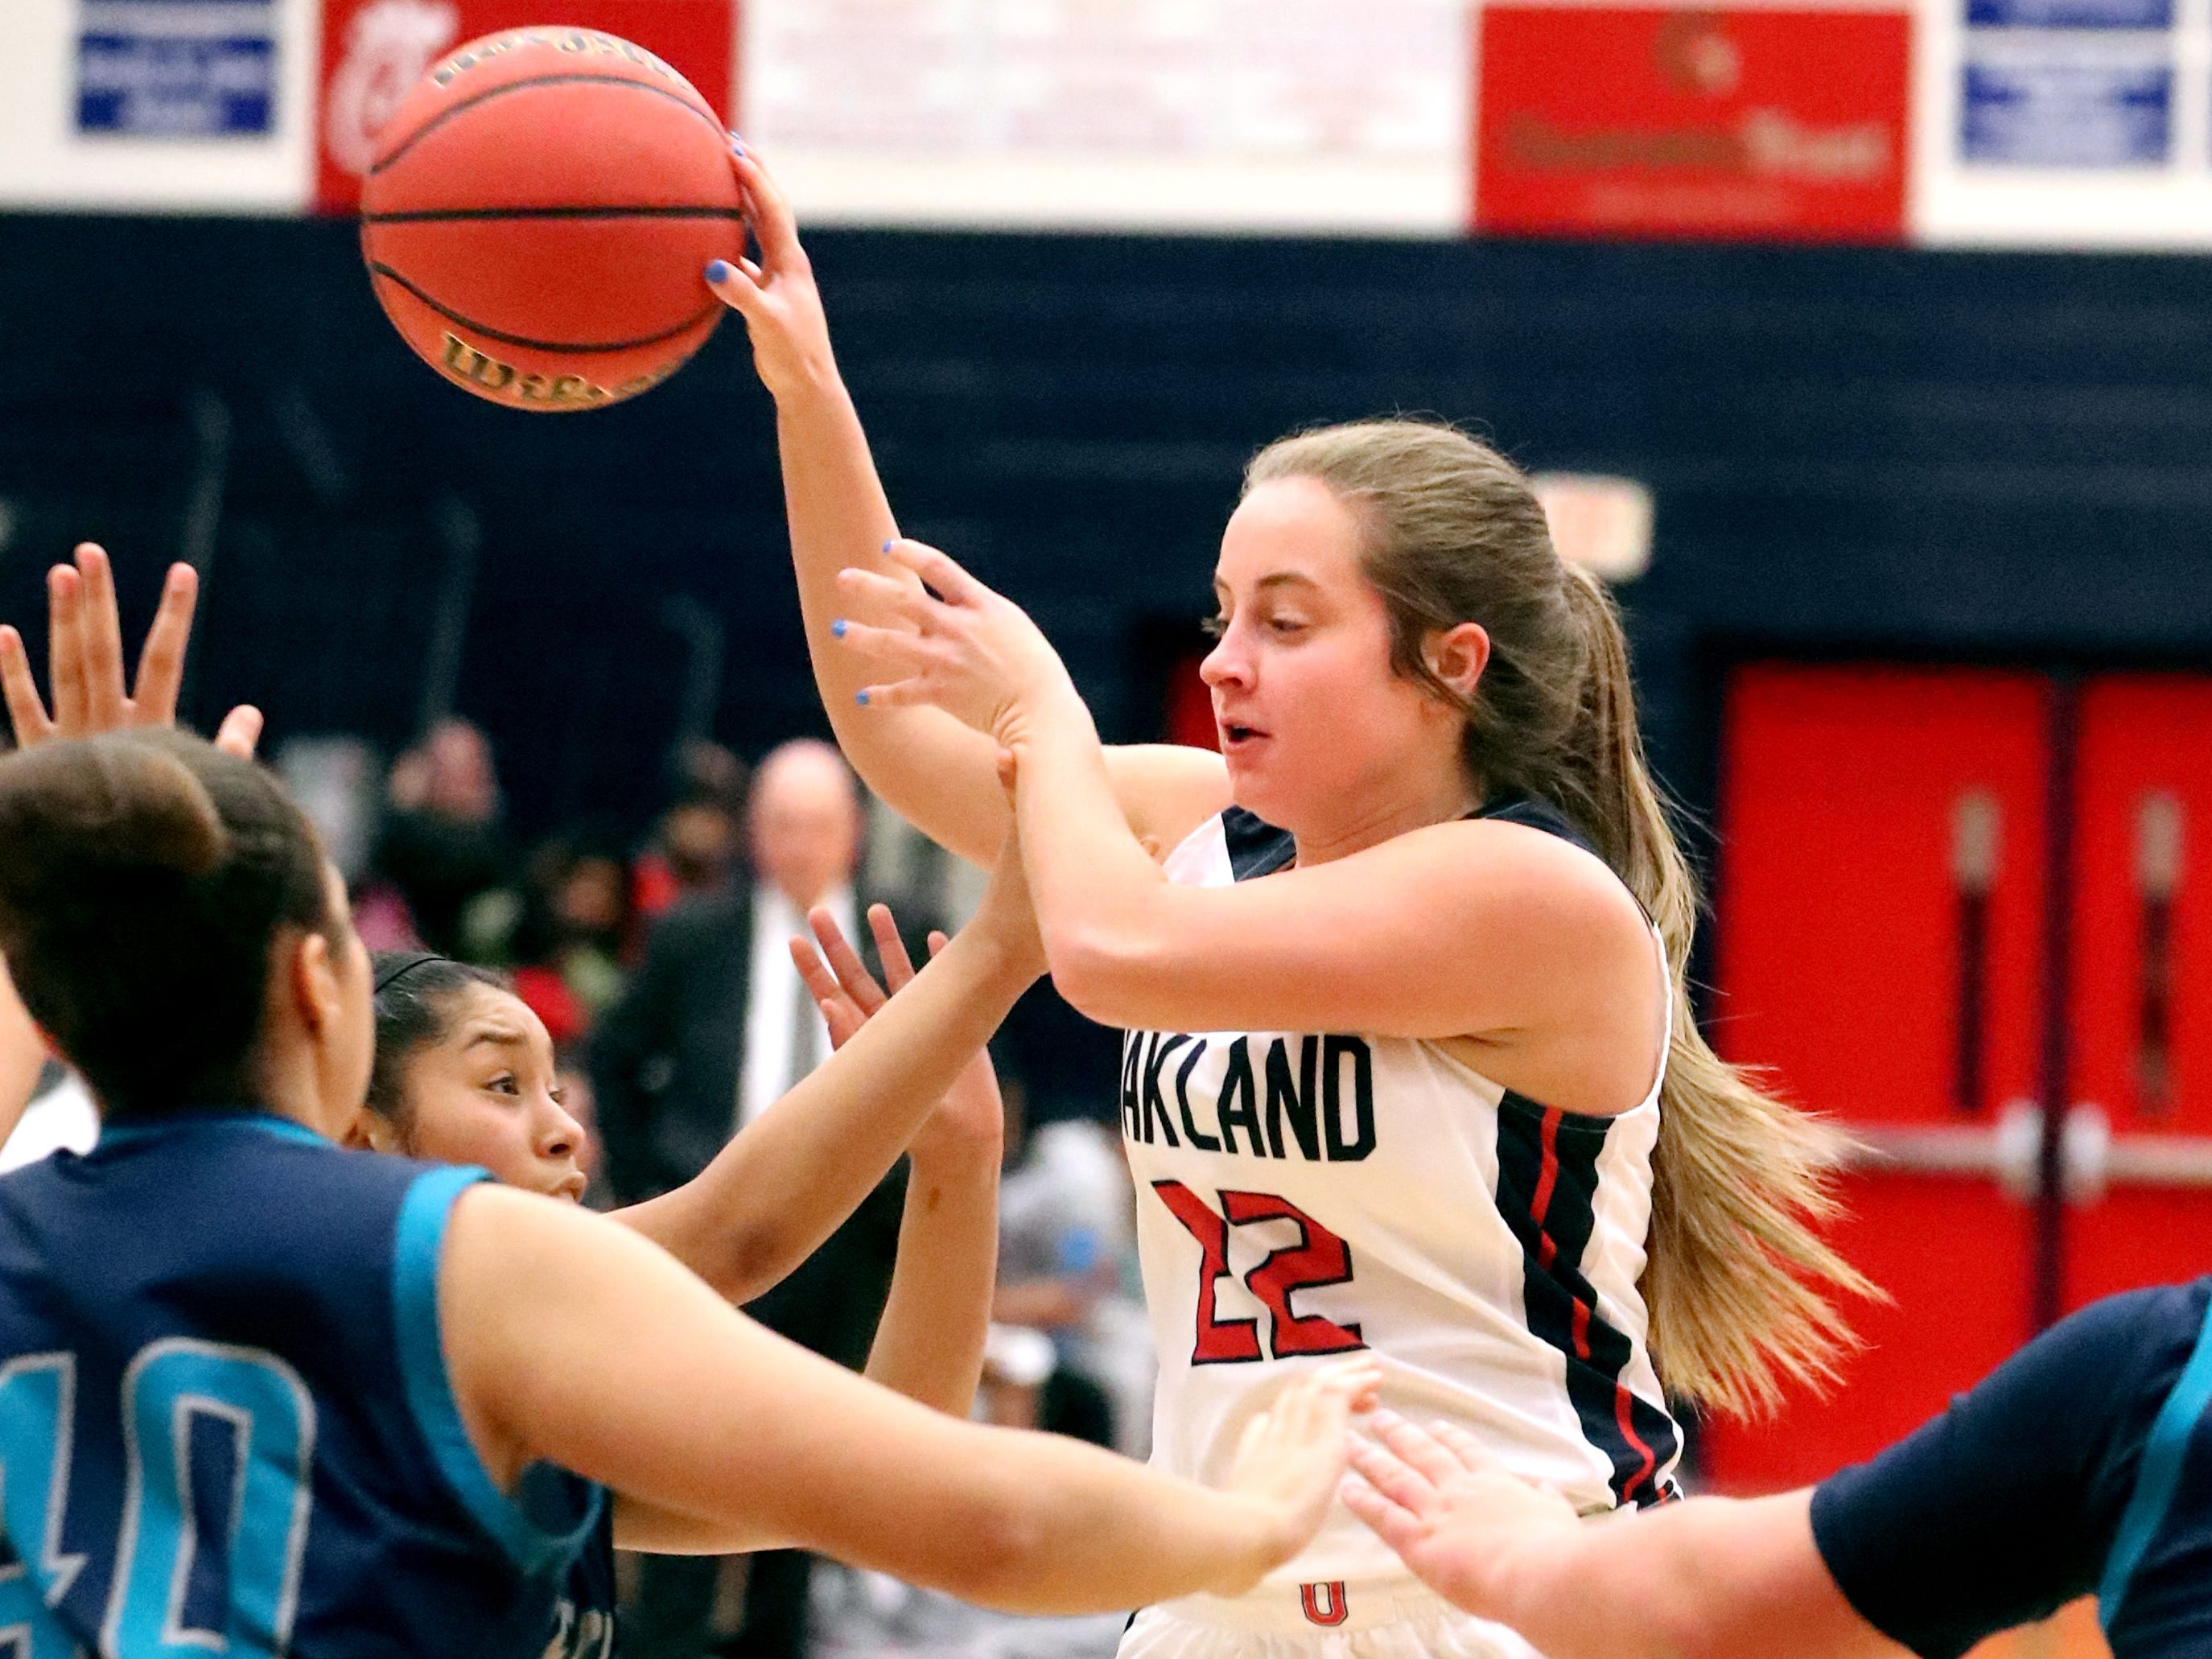 Oakland's Taylor Morton (22) passes the ball during the game against Siegel at Oakland on Tuesday, Dec. 4, 2018.